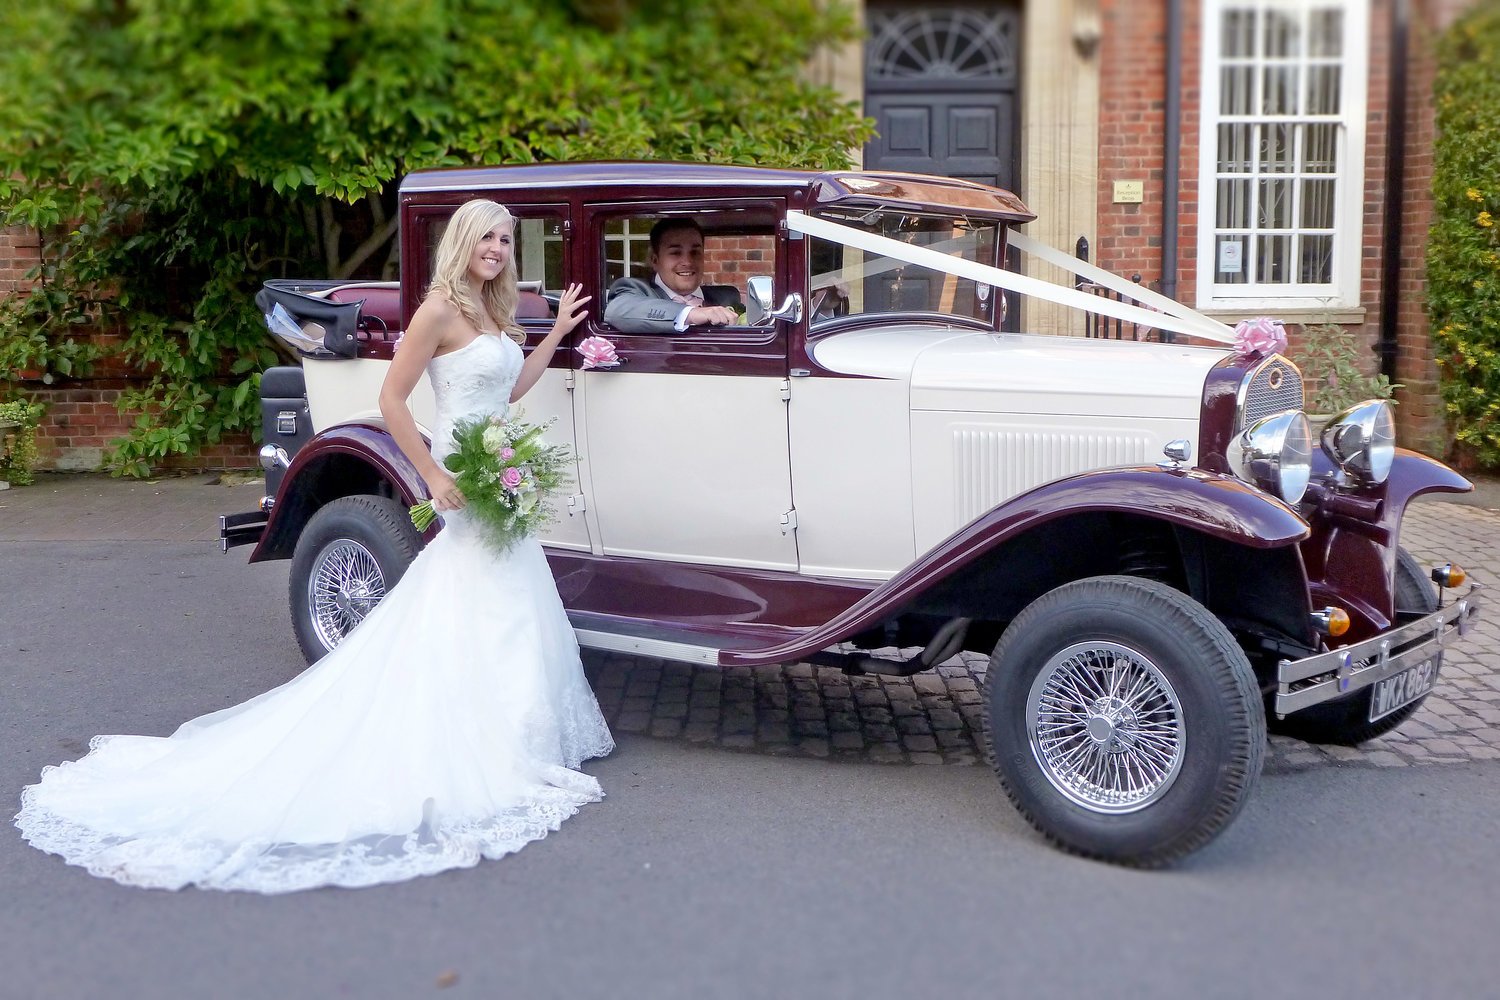 Wedding Car Hire - Prices - Married In Style Wedding Cars